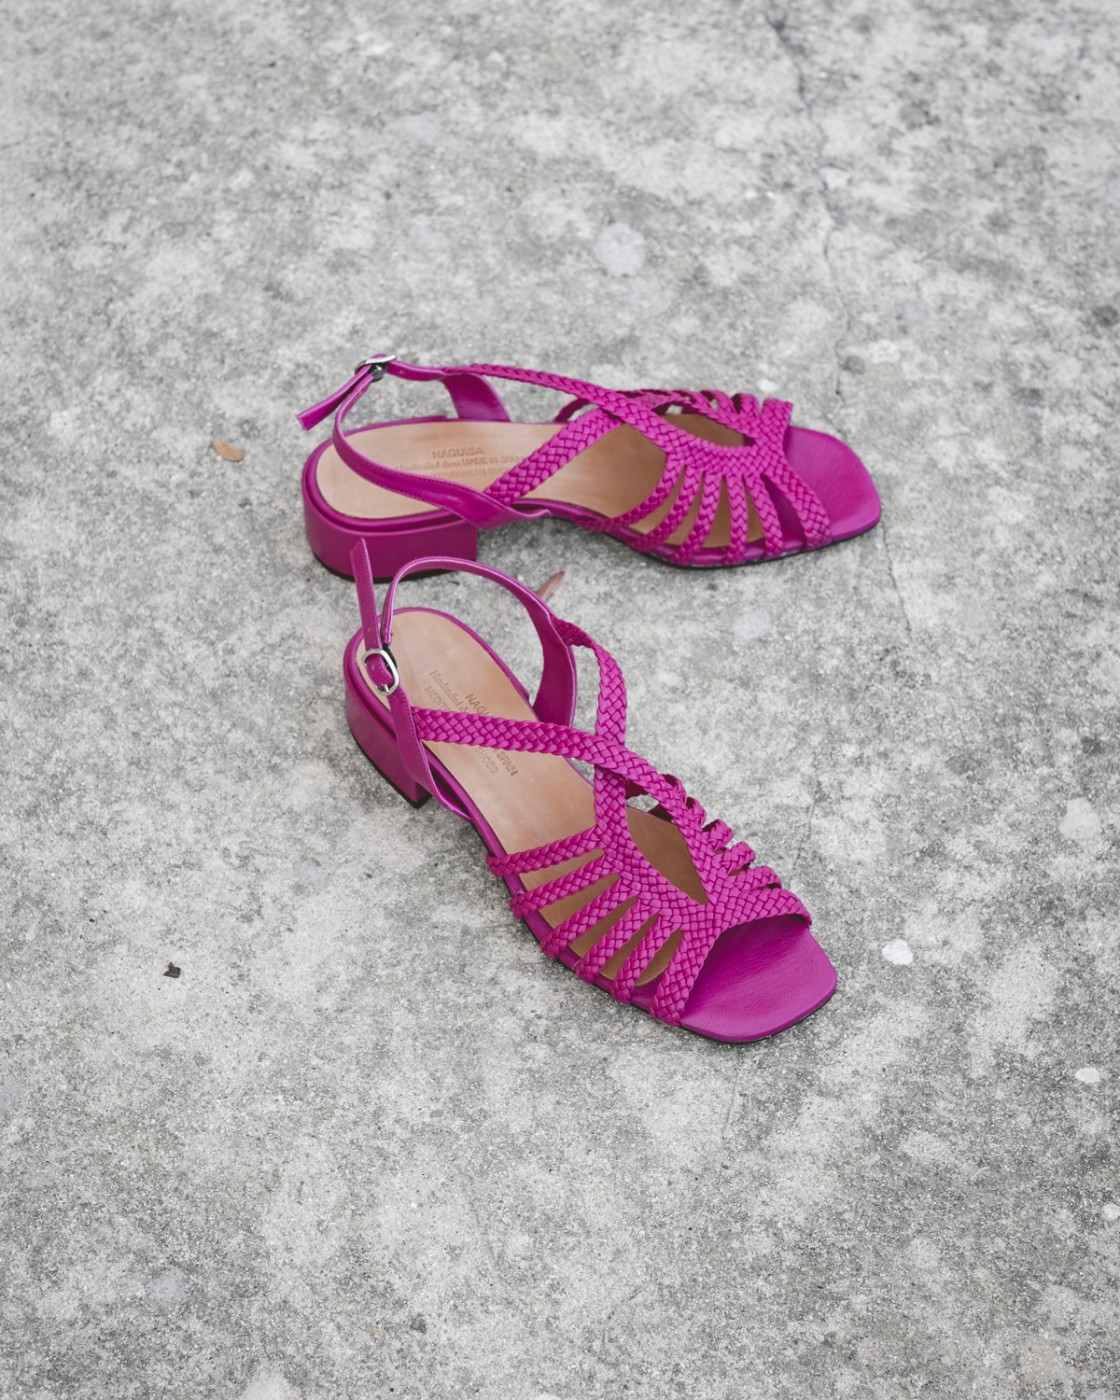 woven-sandals-raco-pink